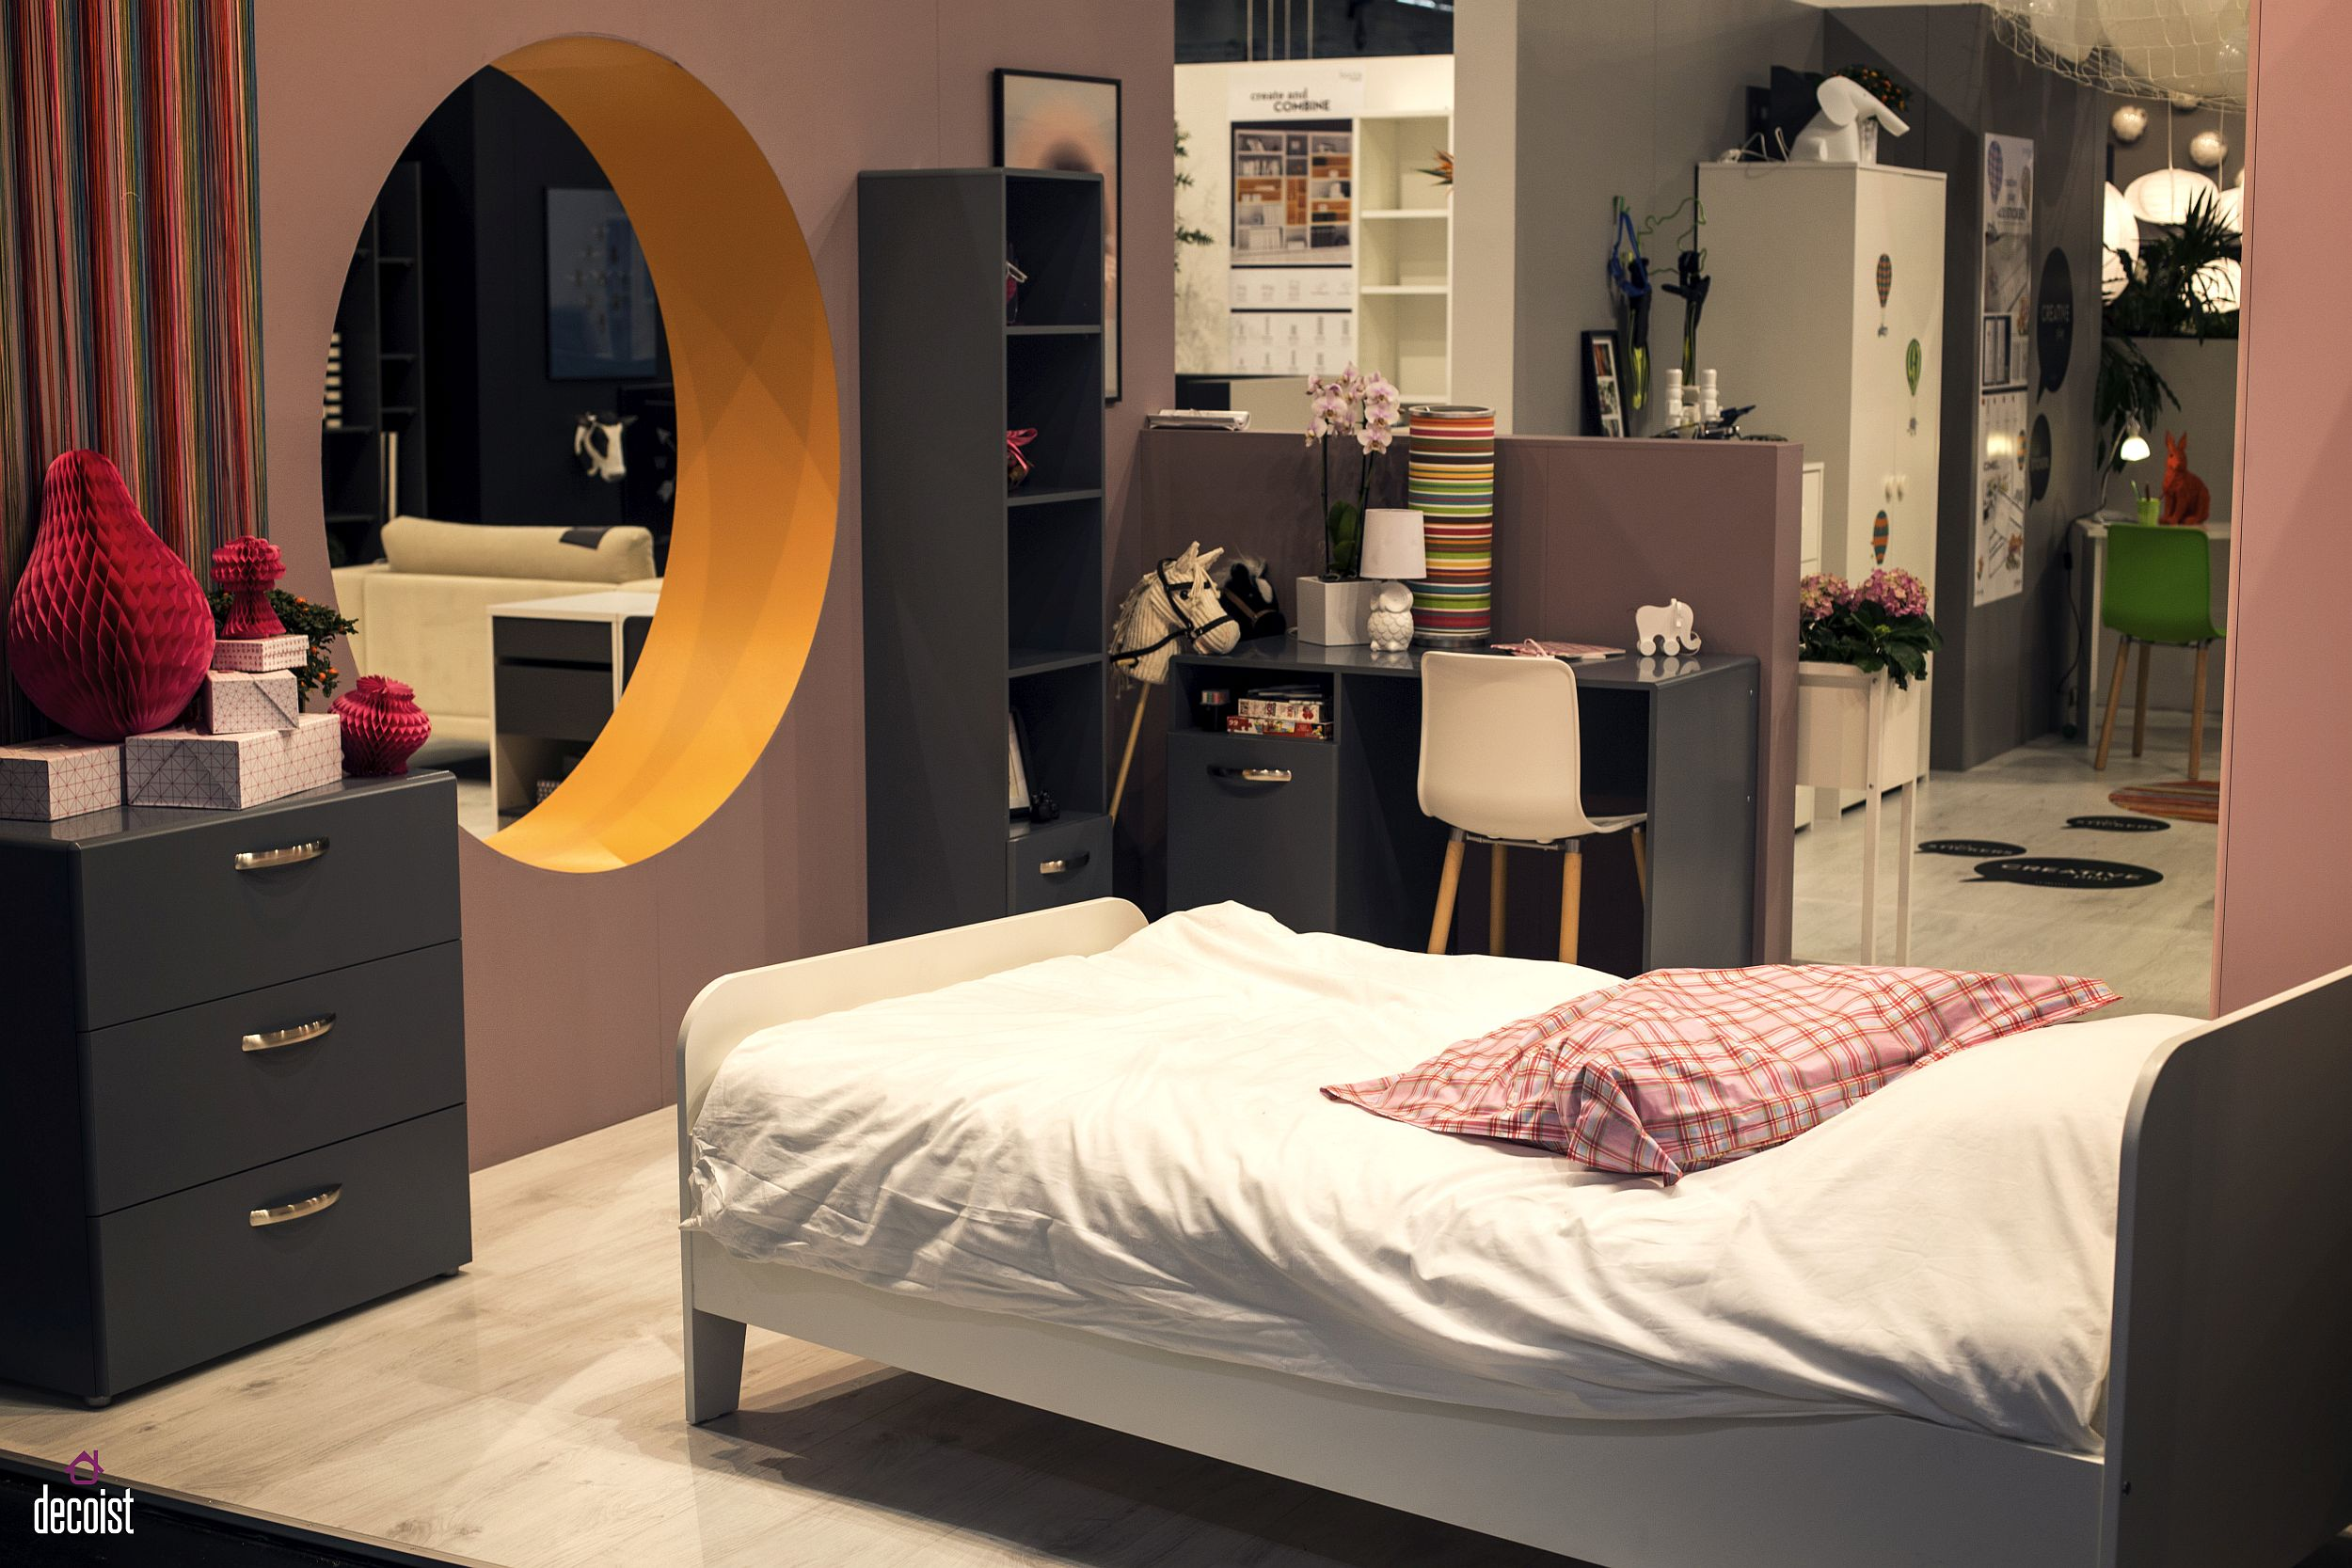 Contemporary teen bedroom idea with a round window, ample storage and a comfy bed